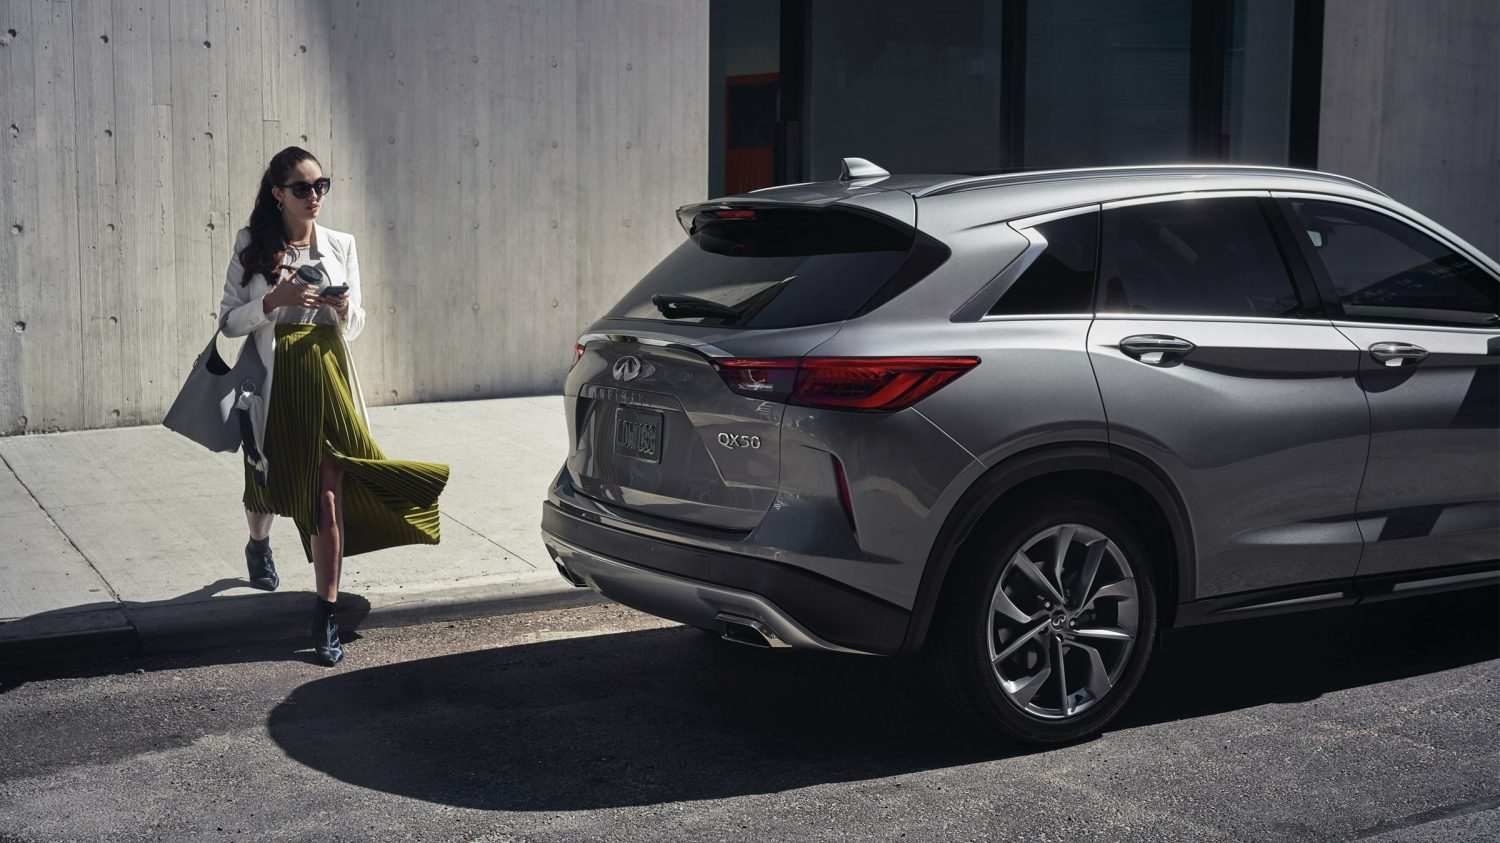 2020 INFINITI QX50 Luxury Crossover Parked Besides Female Model